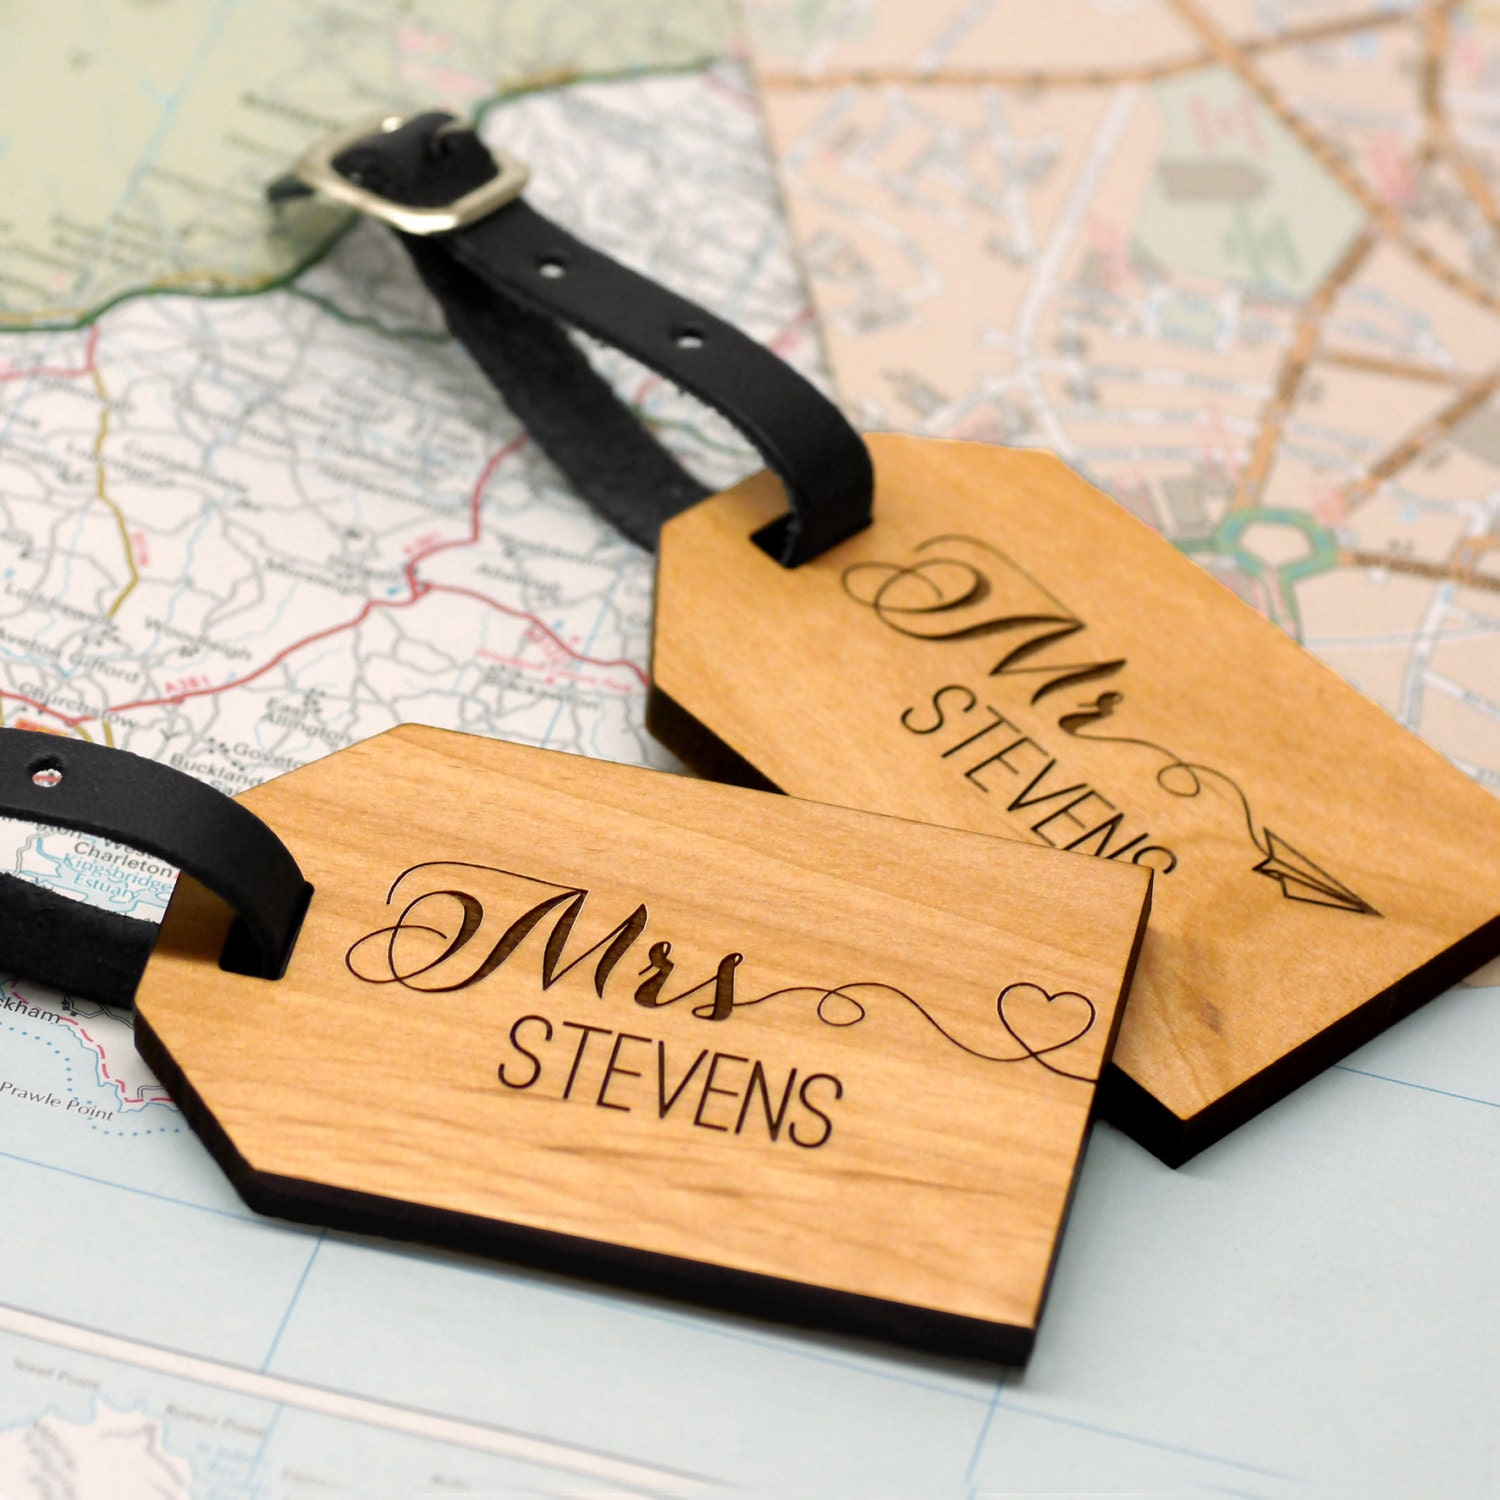 Personalised Luggage Tags Wedding Gift : Mr and Mrs Luggage Tags Wedding Gift by mariaallenboutique on Etsy